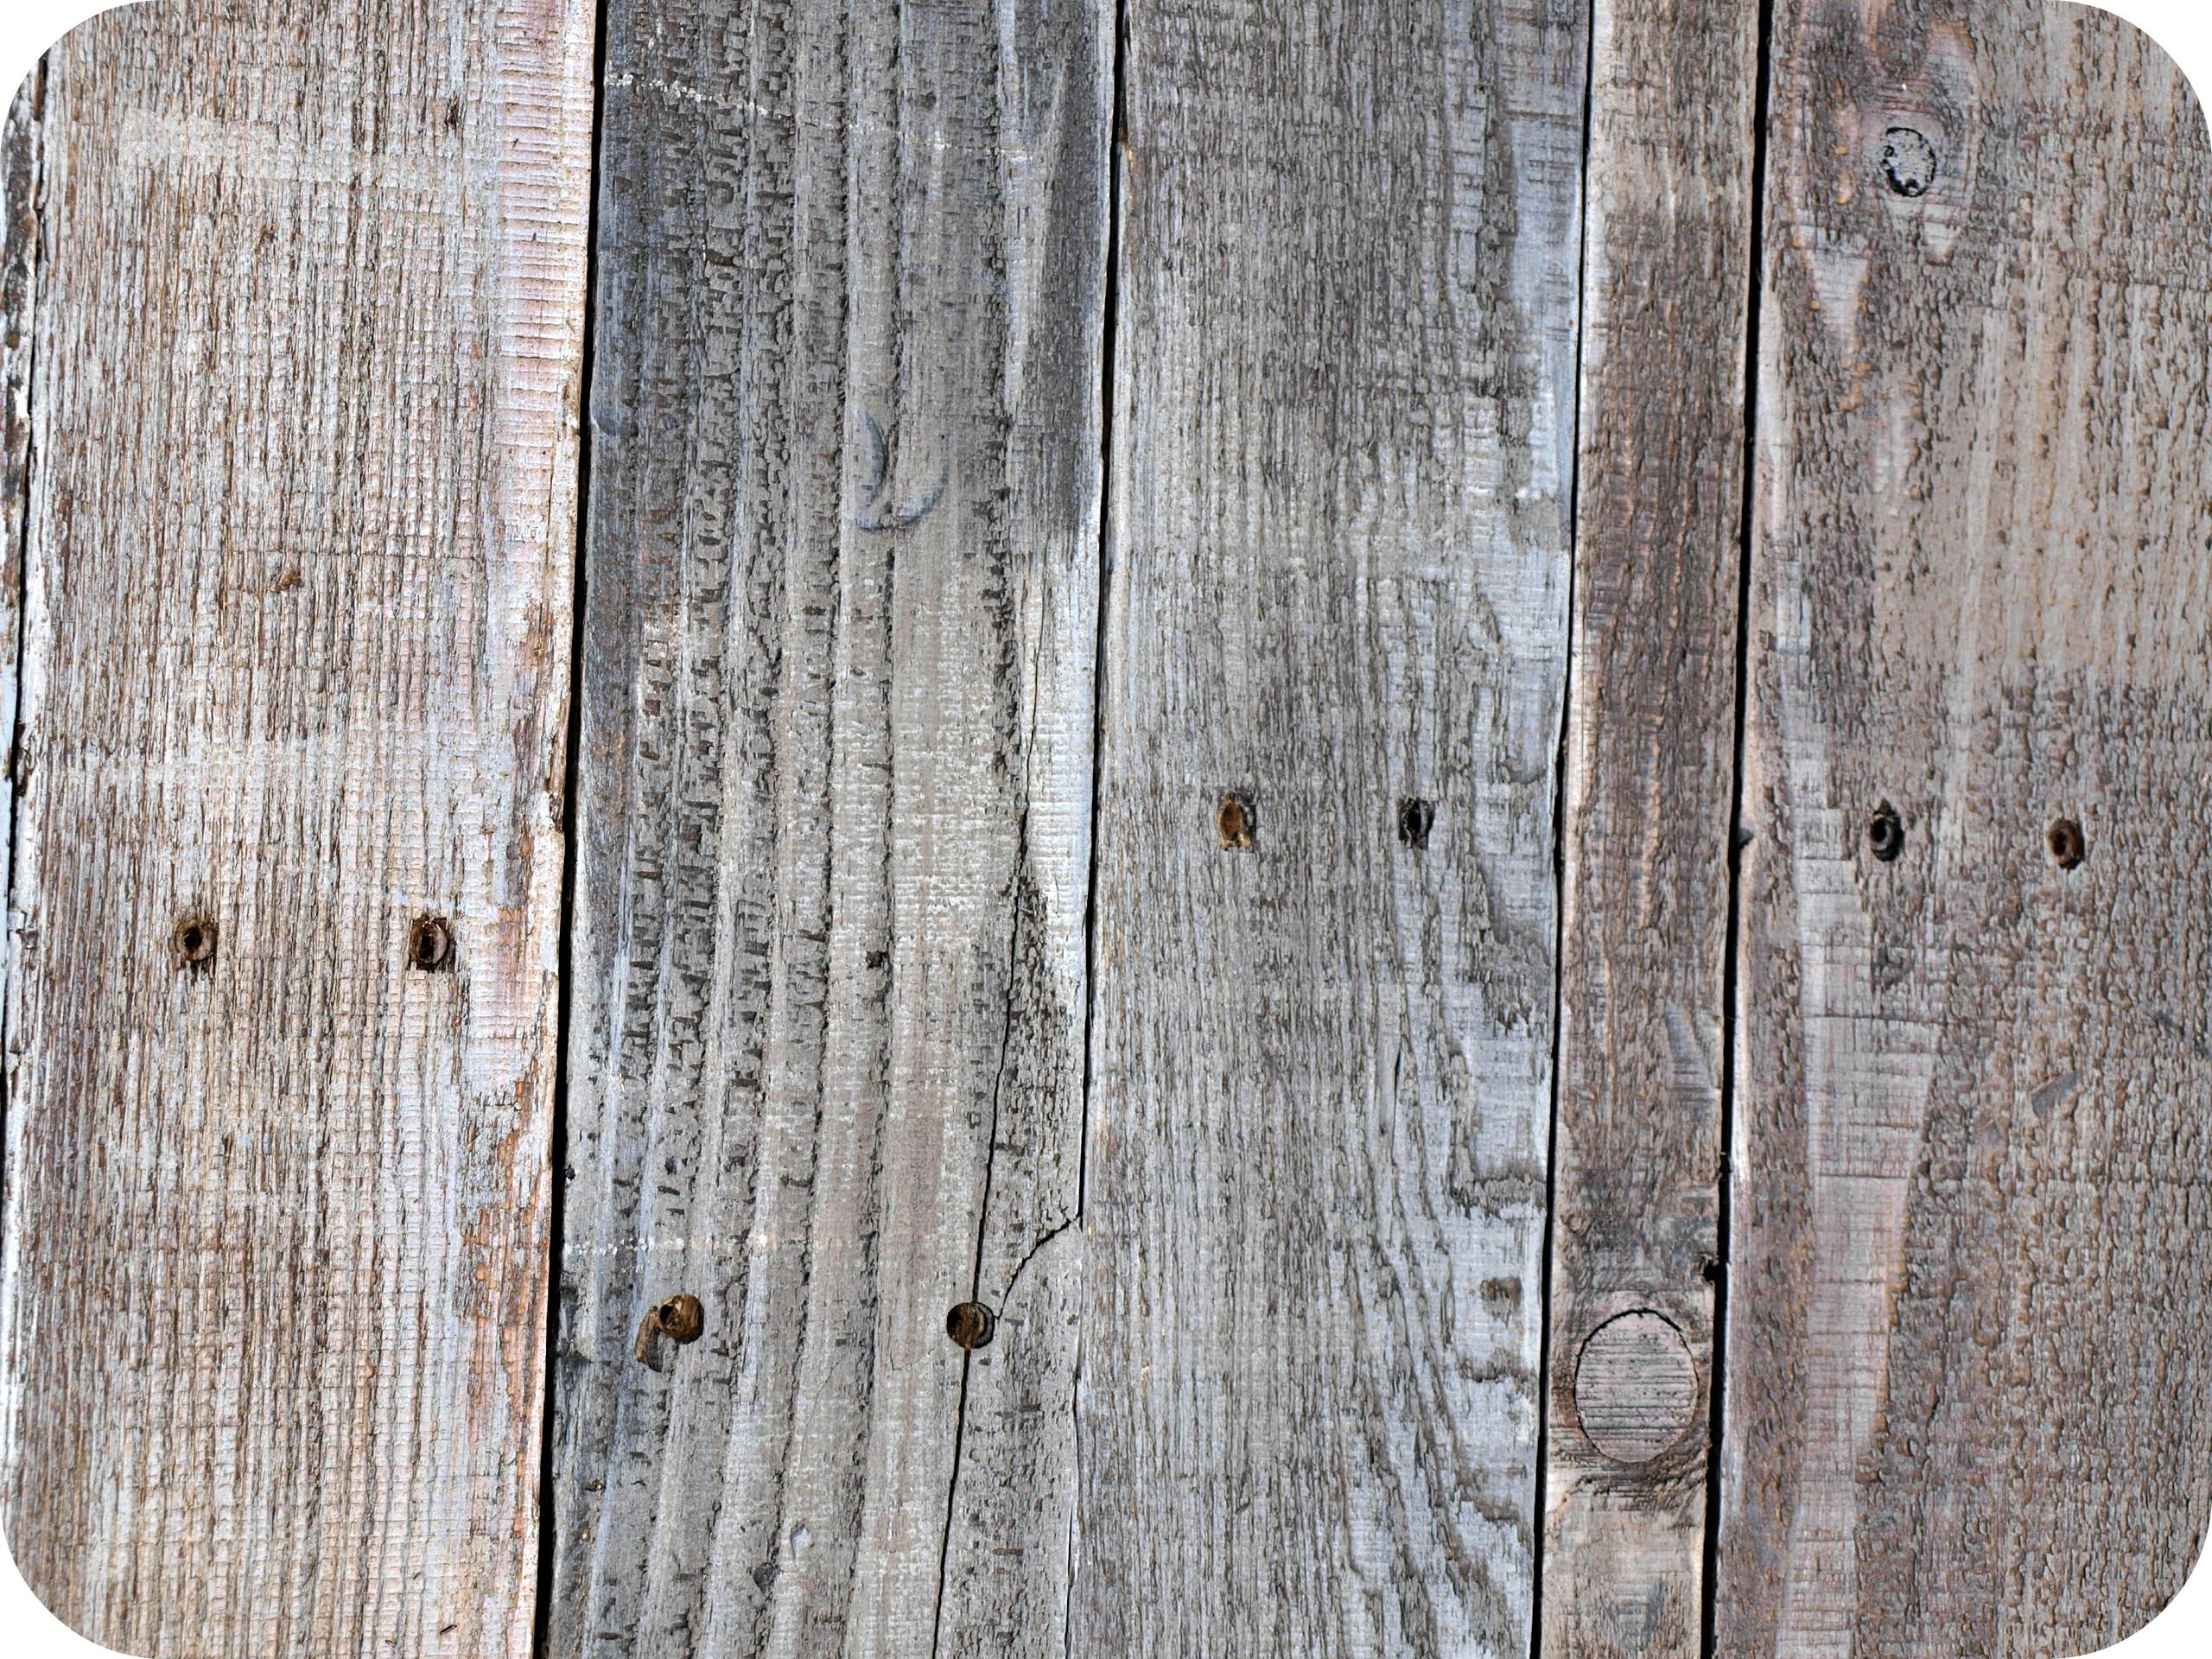 how to age wood with paint and stain projects to try. Black Bedroom Furniture Sets. Home Design Ideas